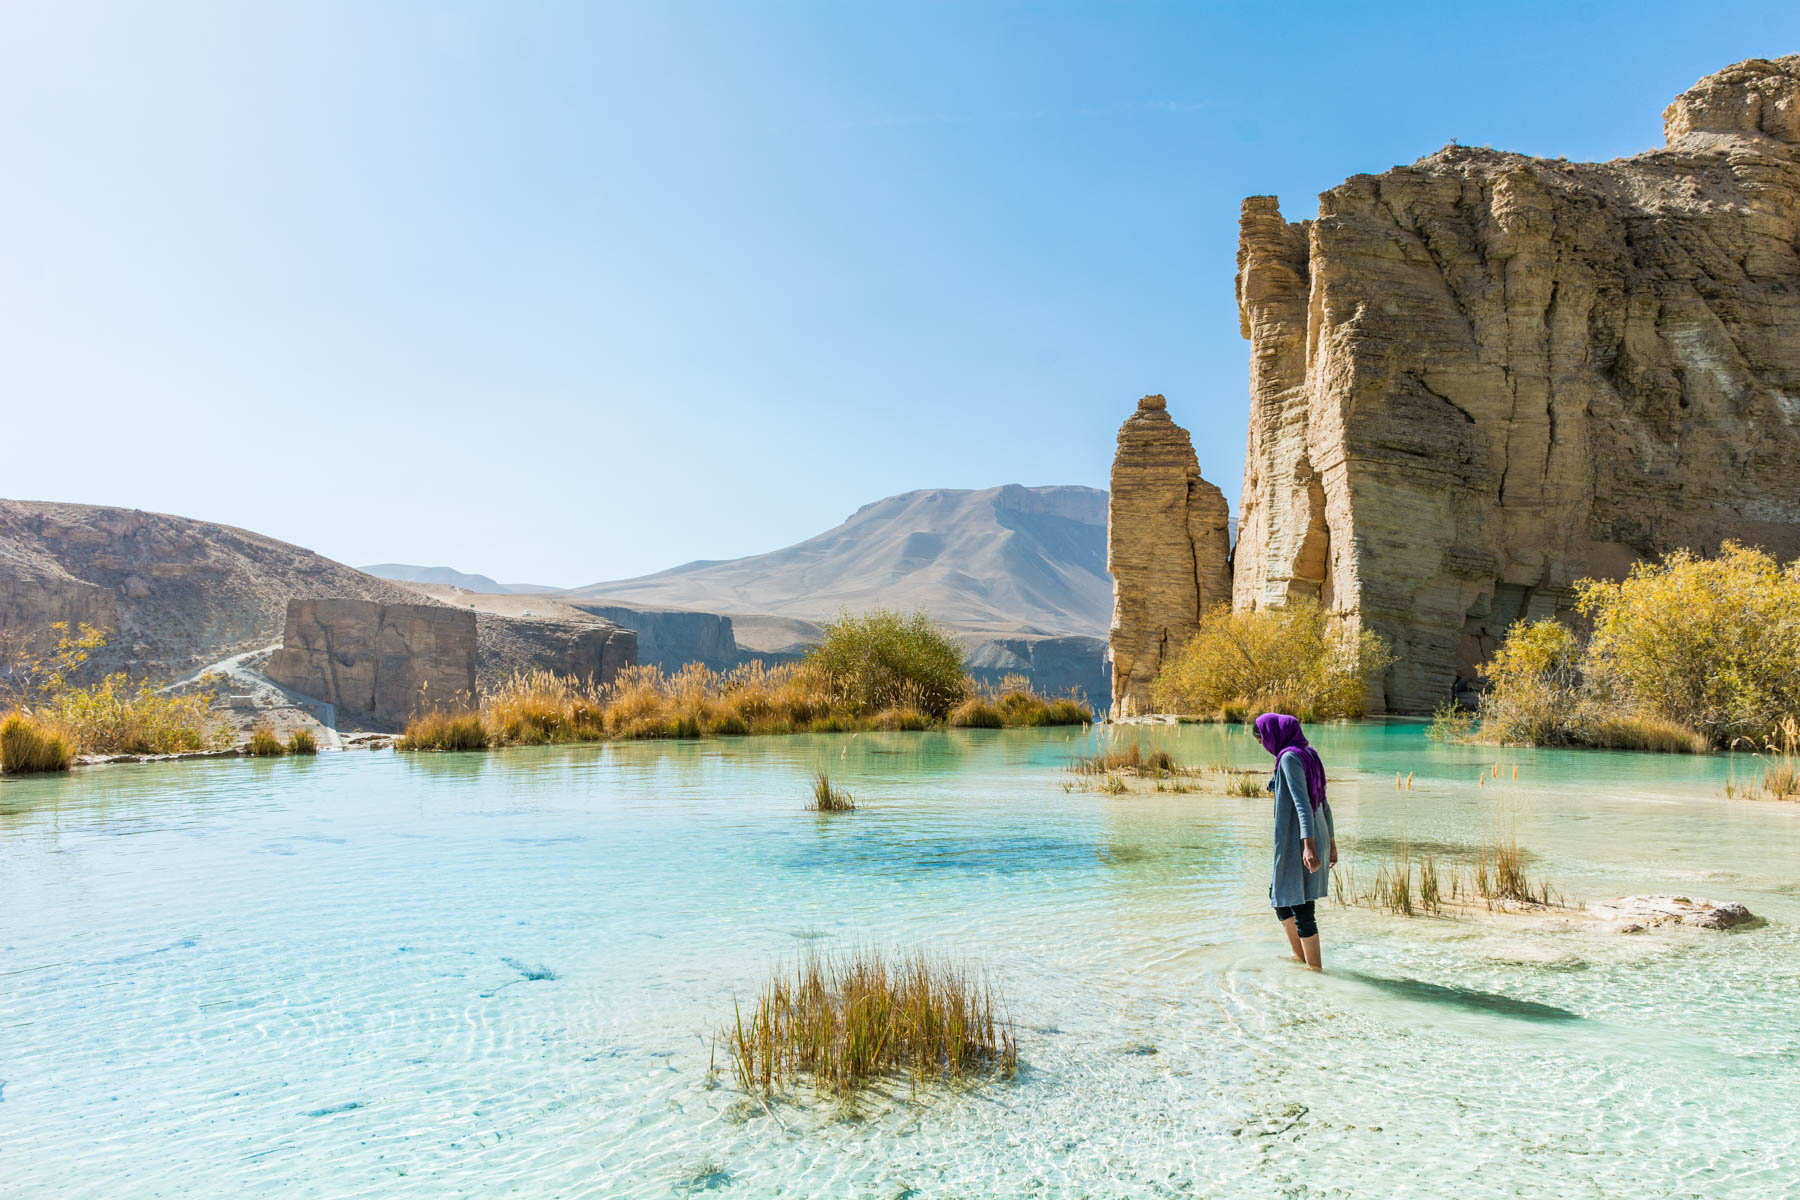 A girl standing in one of the lakes of Band-e-Amir in Afghanistan